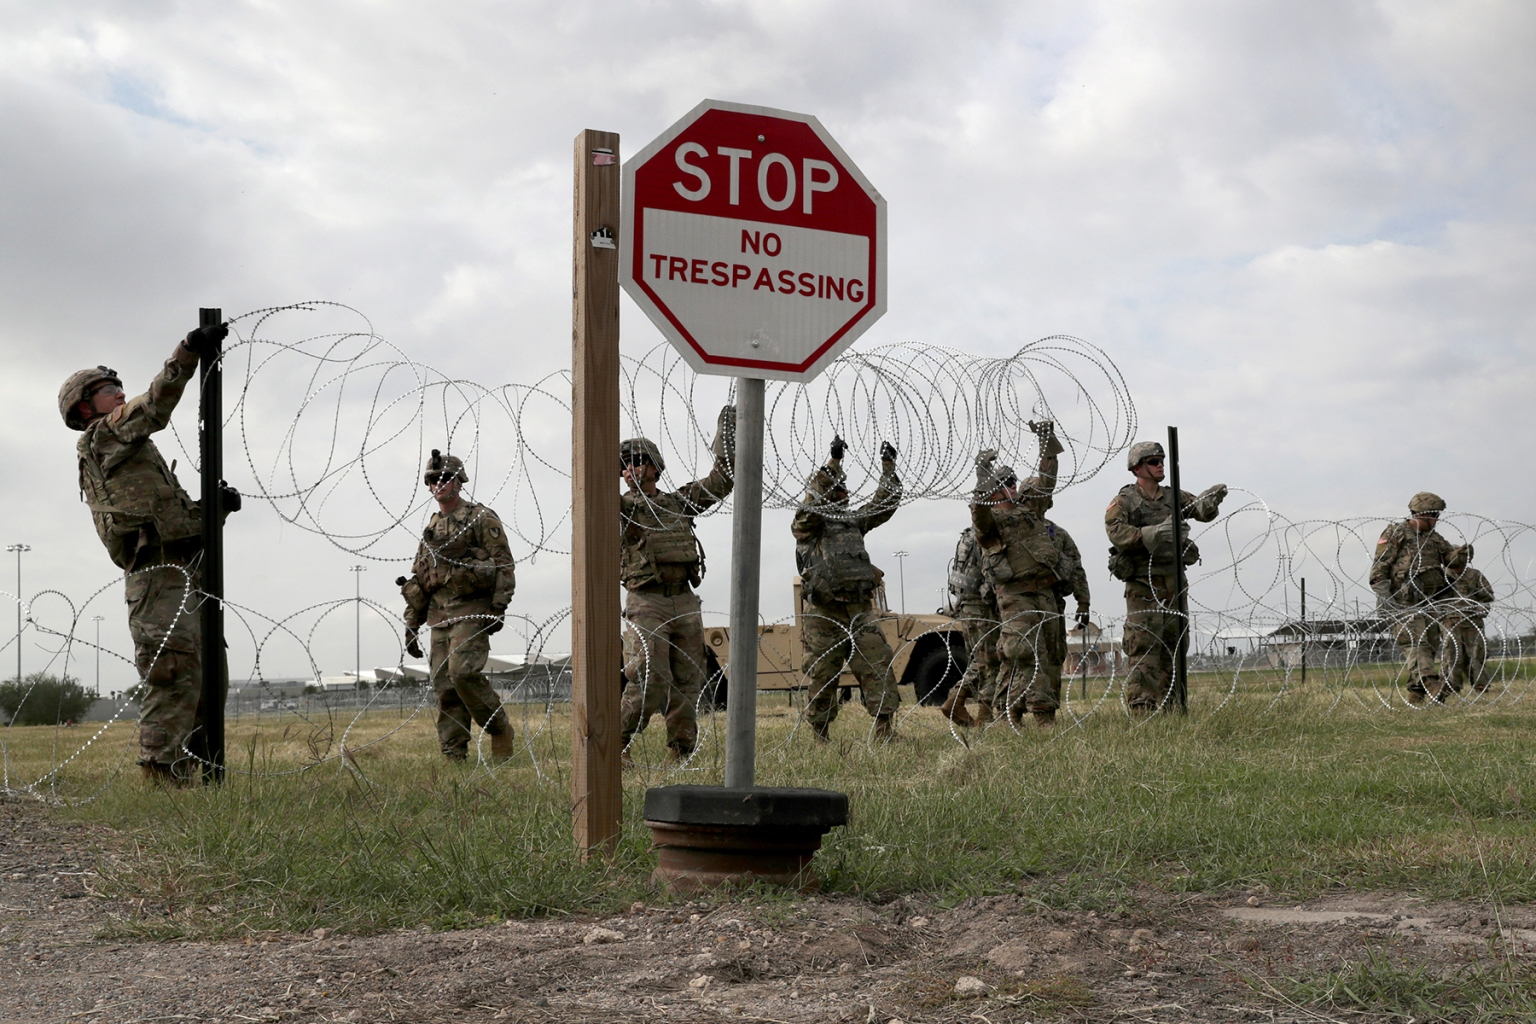 U.S. Army soldiers from Fort Riley, Kansas, string razor wire near the port of entry at the U.S.-Mexico border in Donna, Texas, on Nov. 4. President Trump ordered a surge in troops to the southern border ahead of the possible arrival of an immigrant caravan in upcoming weeks. John Moore/Getty Images